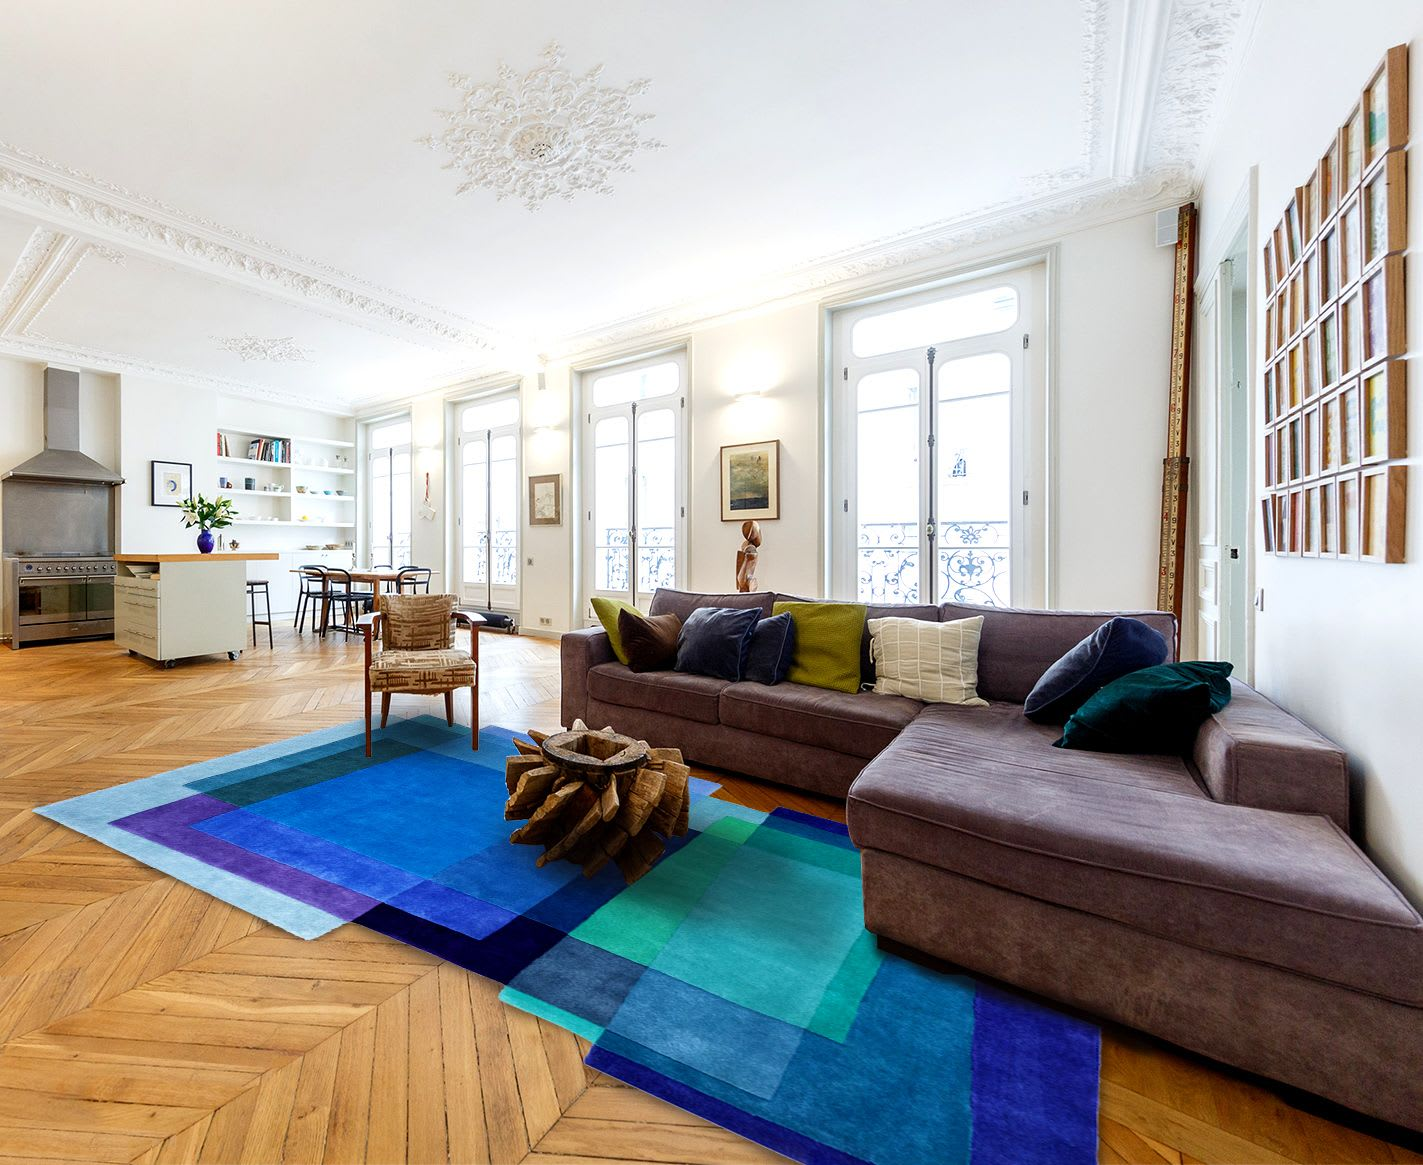 Overlapping Rectangles Rug in Blue